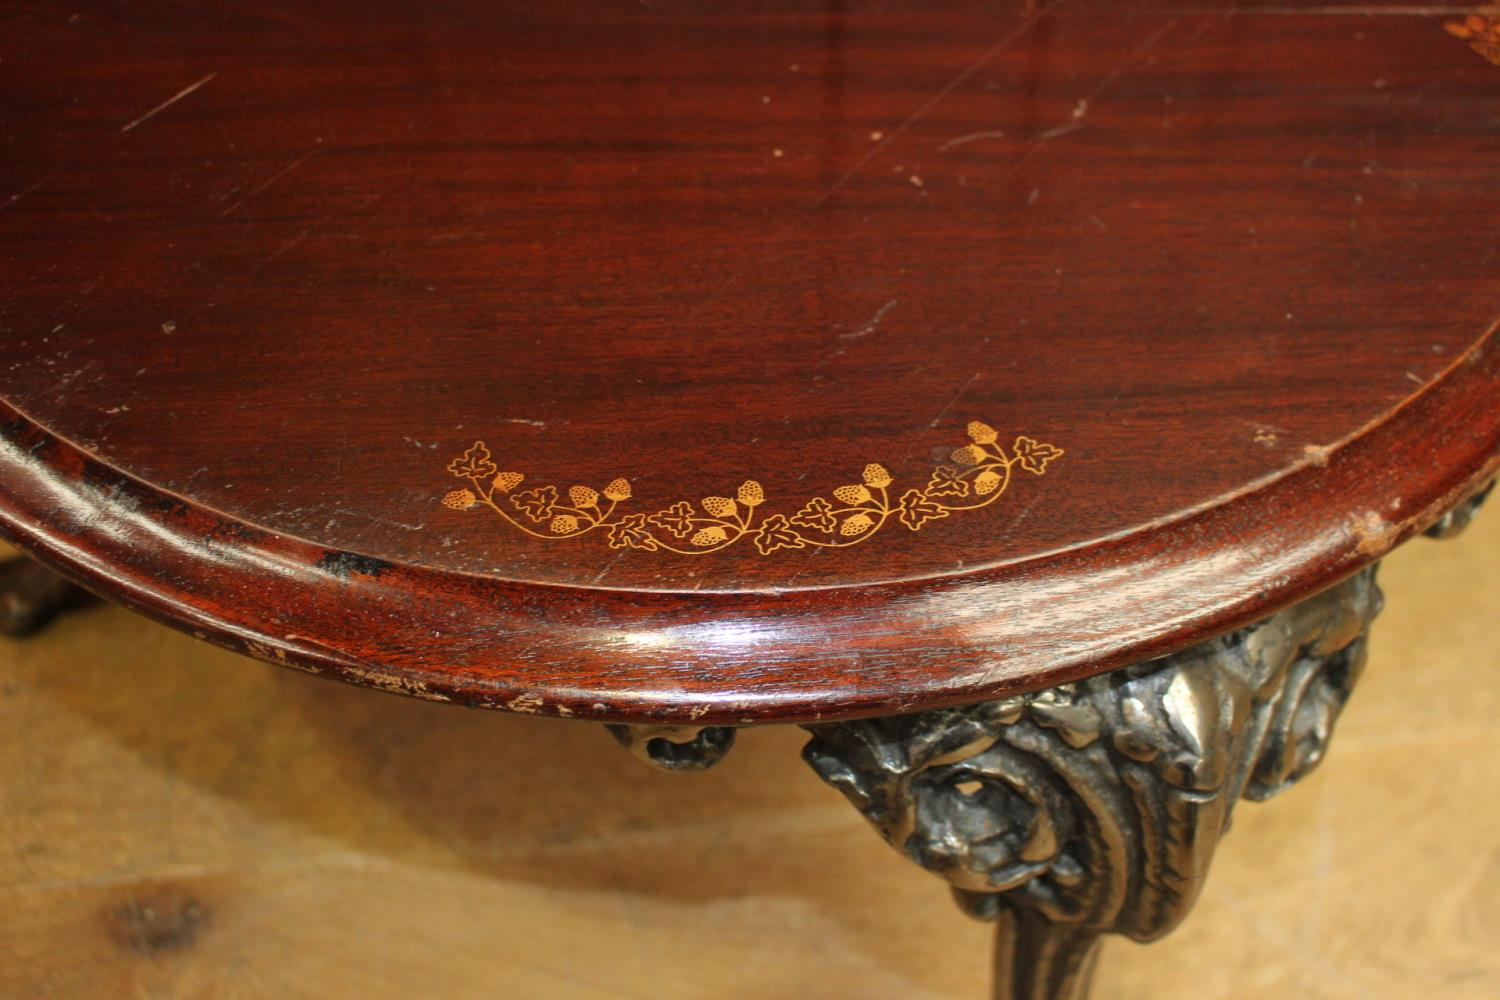 Cast iron coffee table - Image 2 of 2